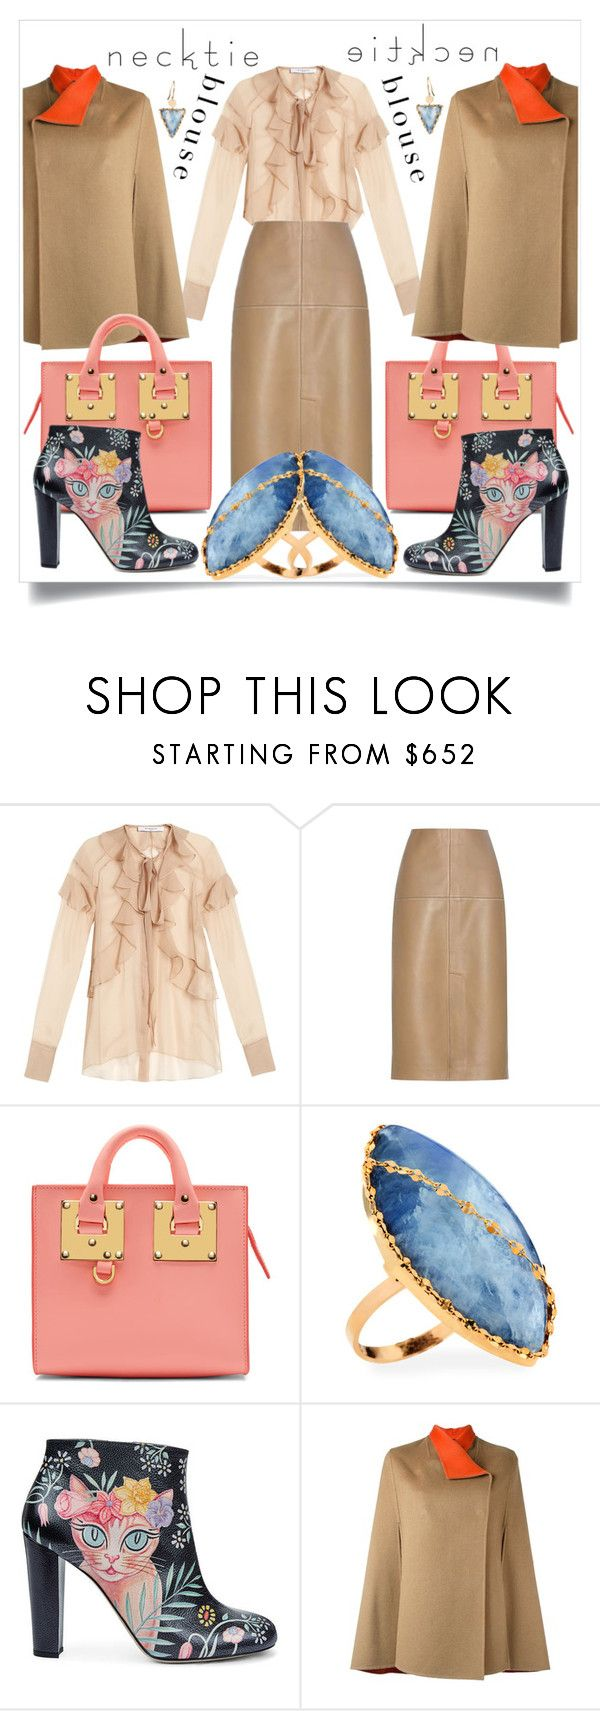 """Boring Beige"" by capricat ❤ liked on Polyvore featuring Givenchy, By Malene Birger, Sophie Hulme, Lana, Camilla Elphick and Joseph"